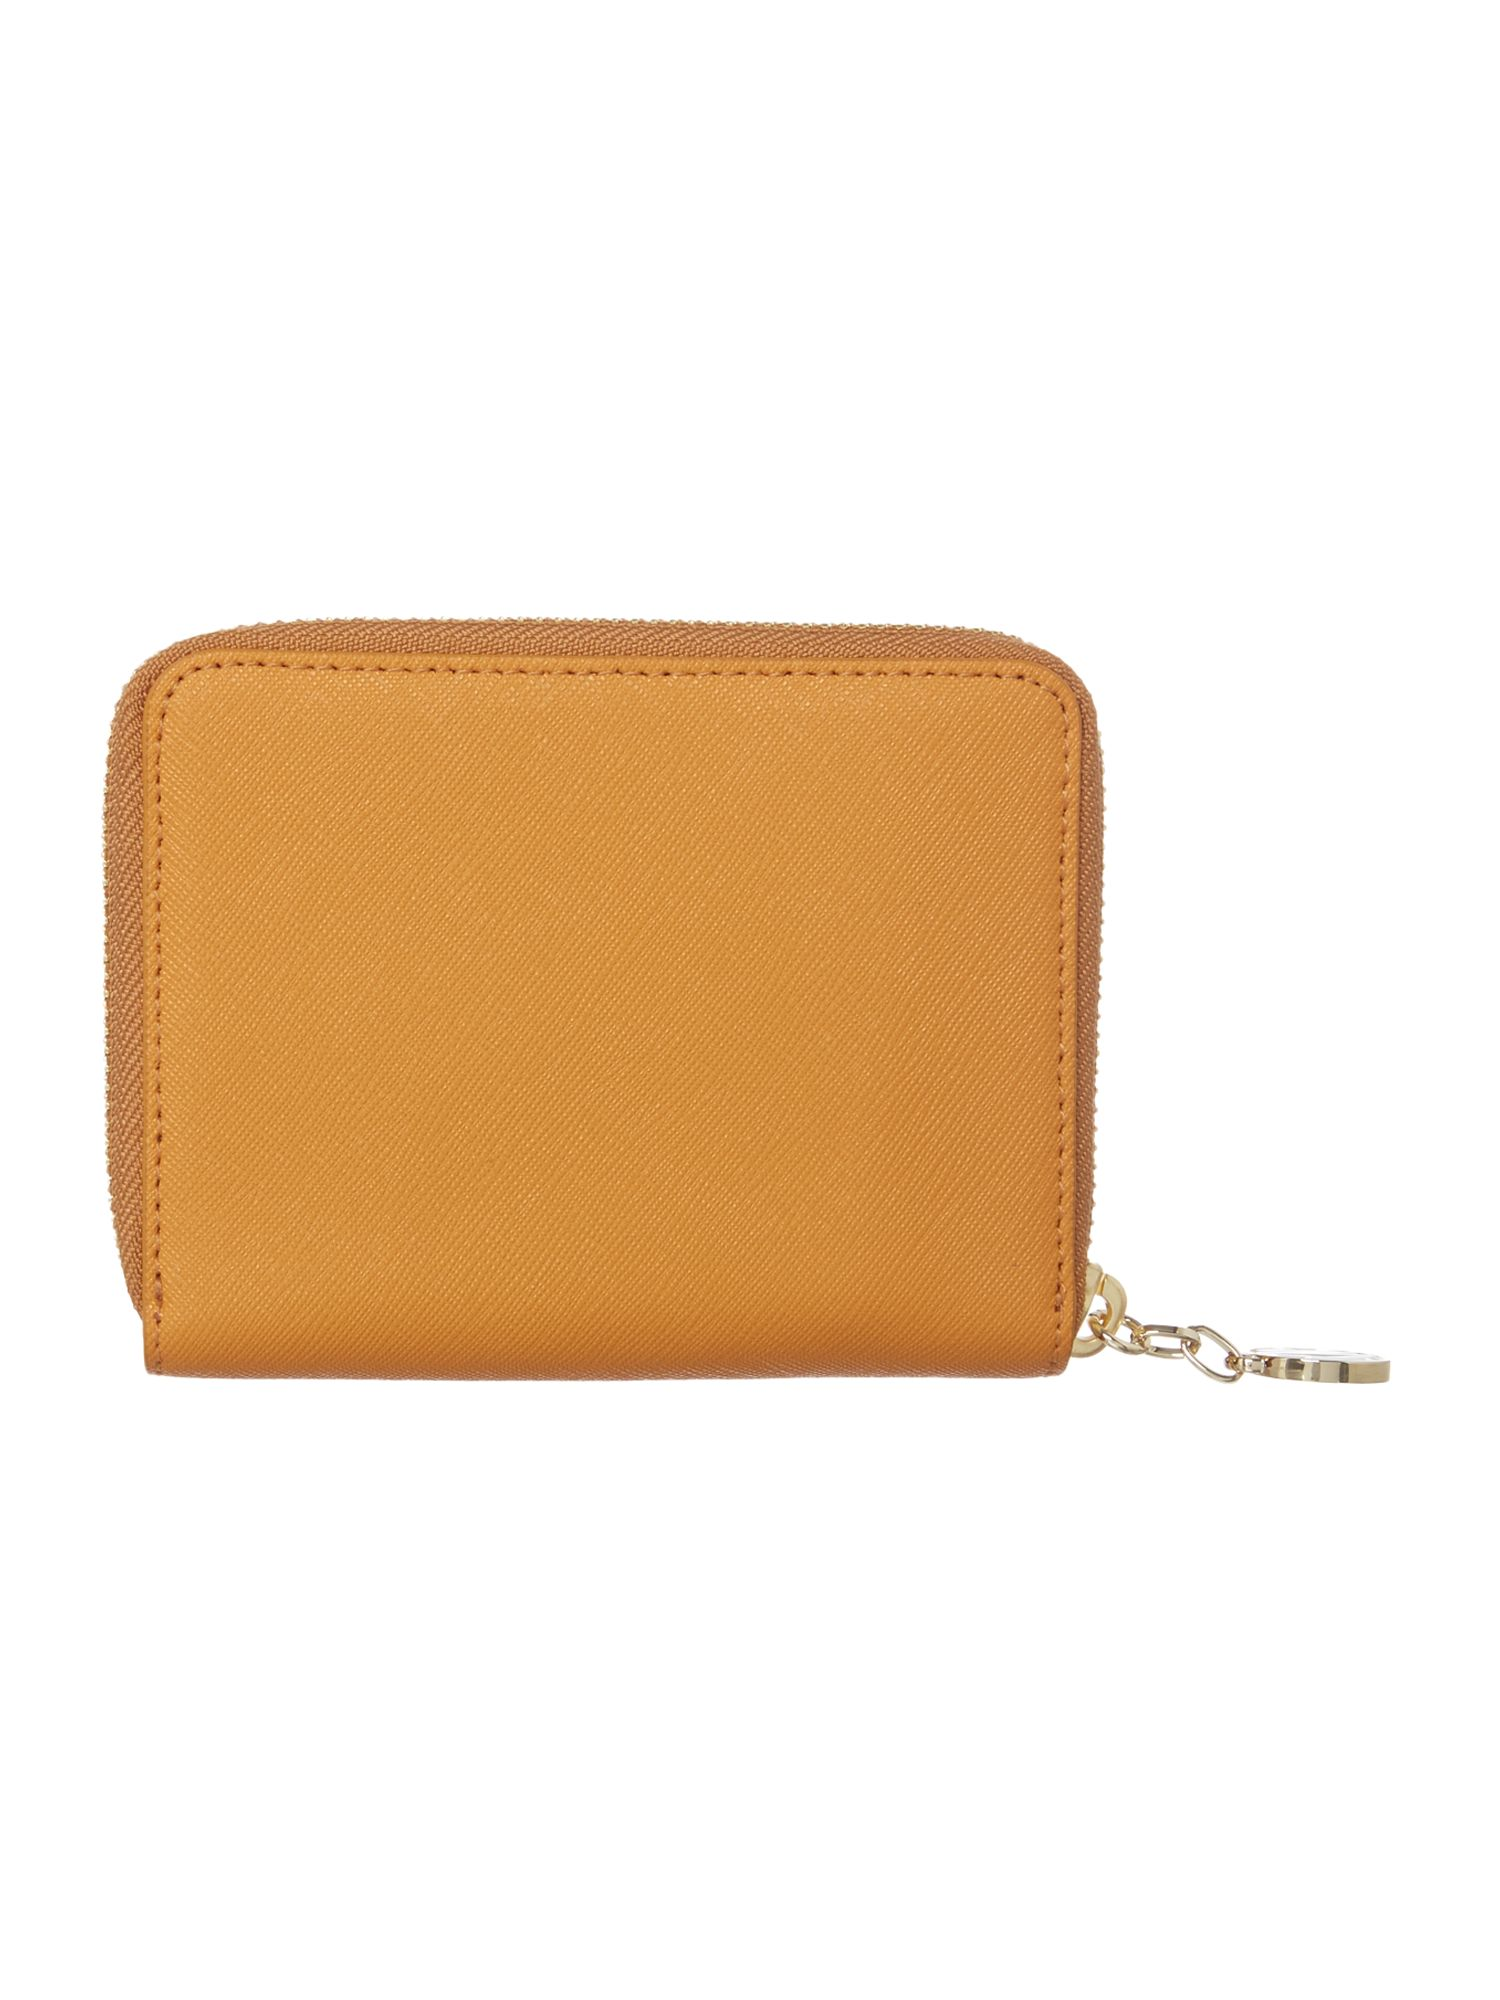 Saffiano tan small zip around